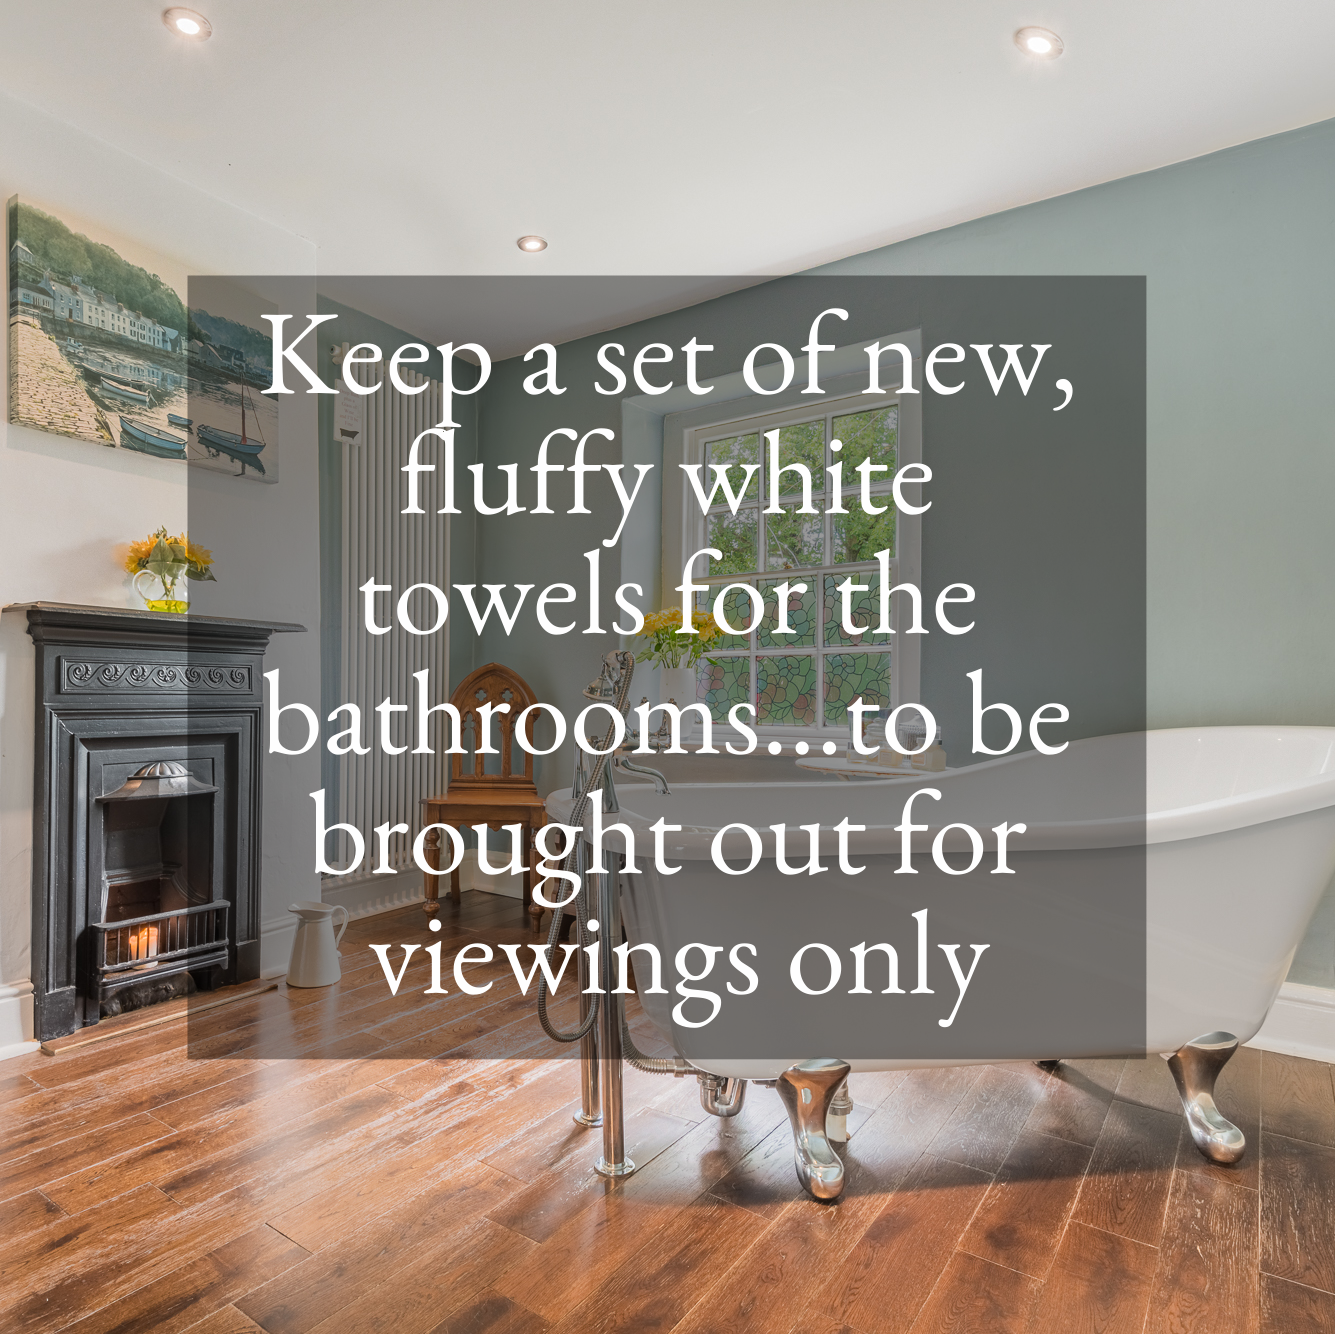 tg7-keep-a-set-of-new-fluffy-white-towels